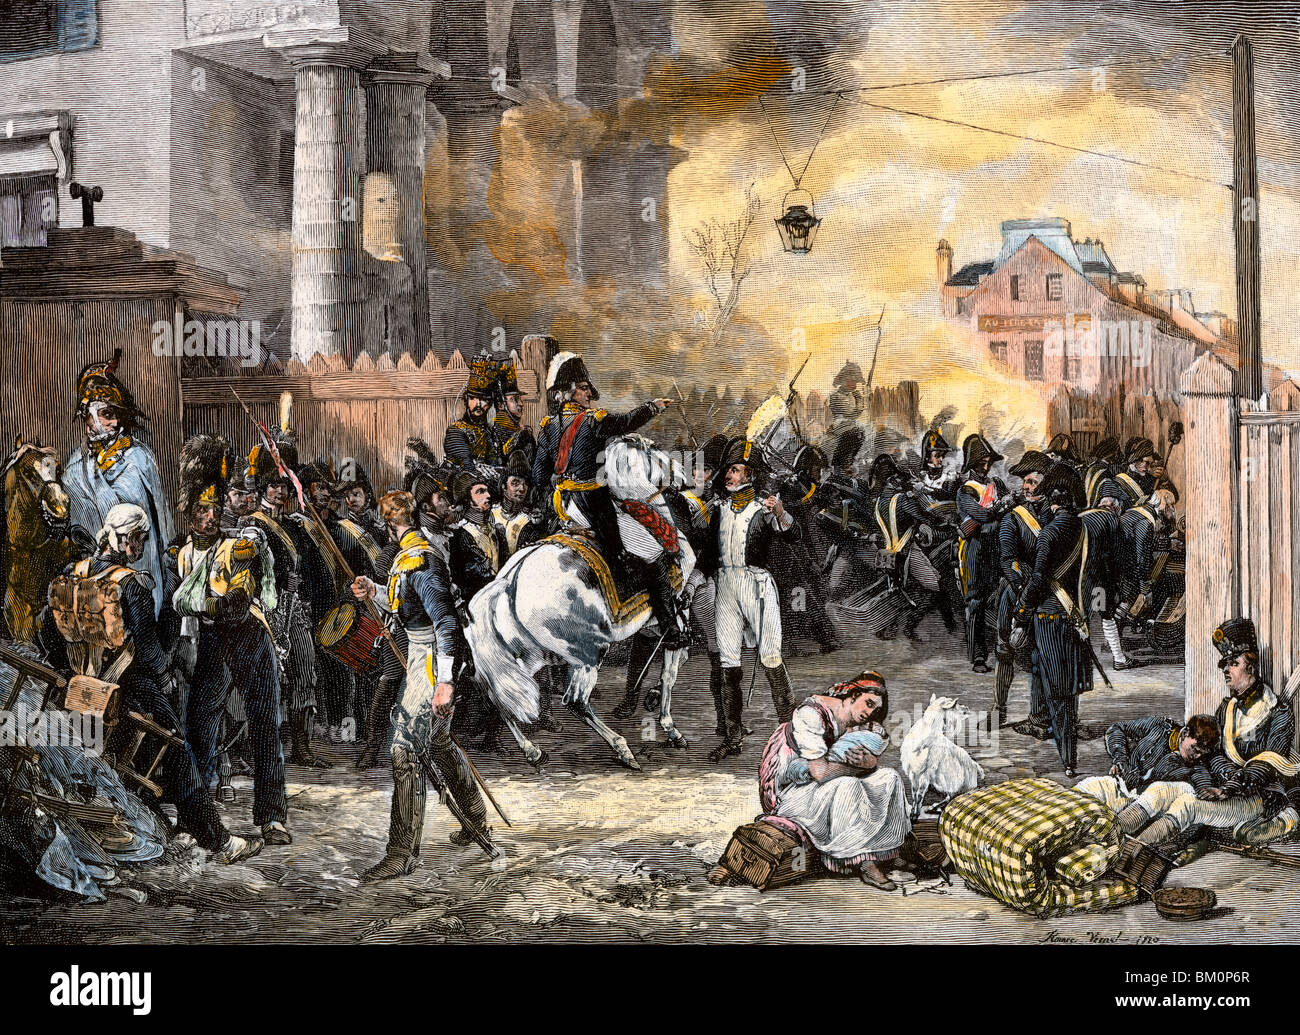 Napoleon's forces fighting behind barricades to defend Paris,1814. Hand-colored woodcut Stock Photo